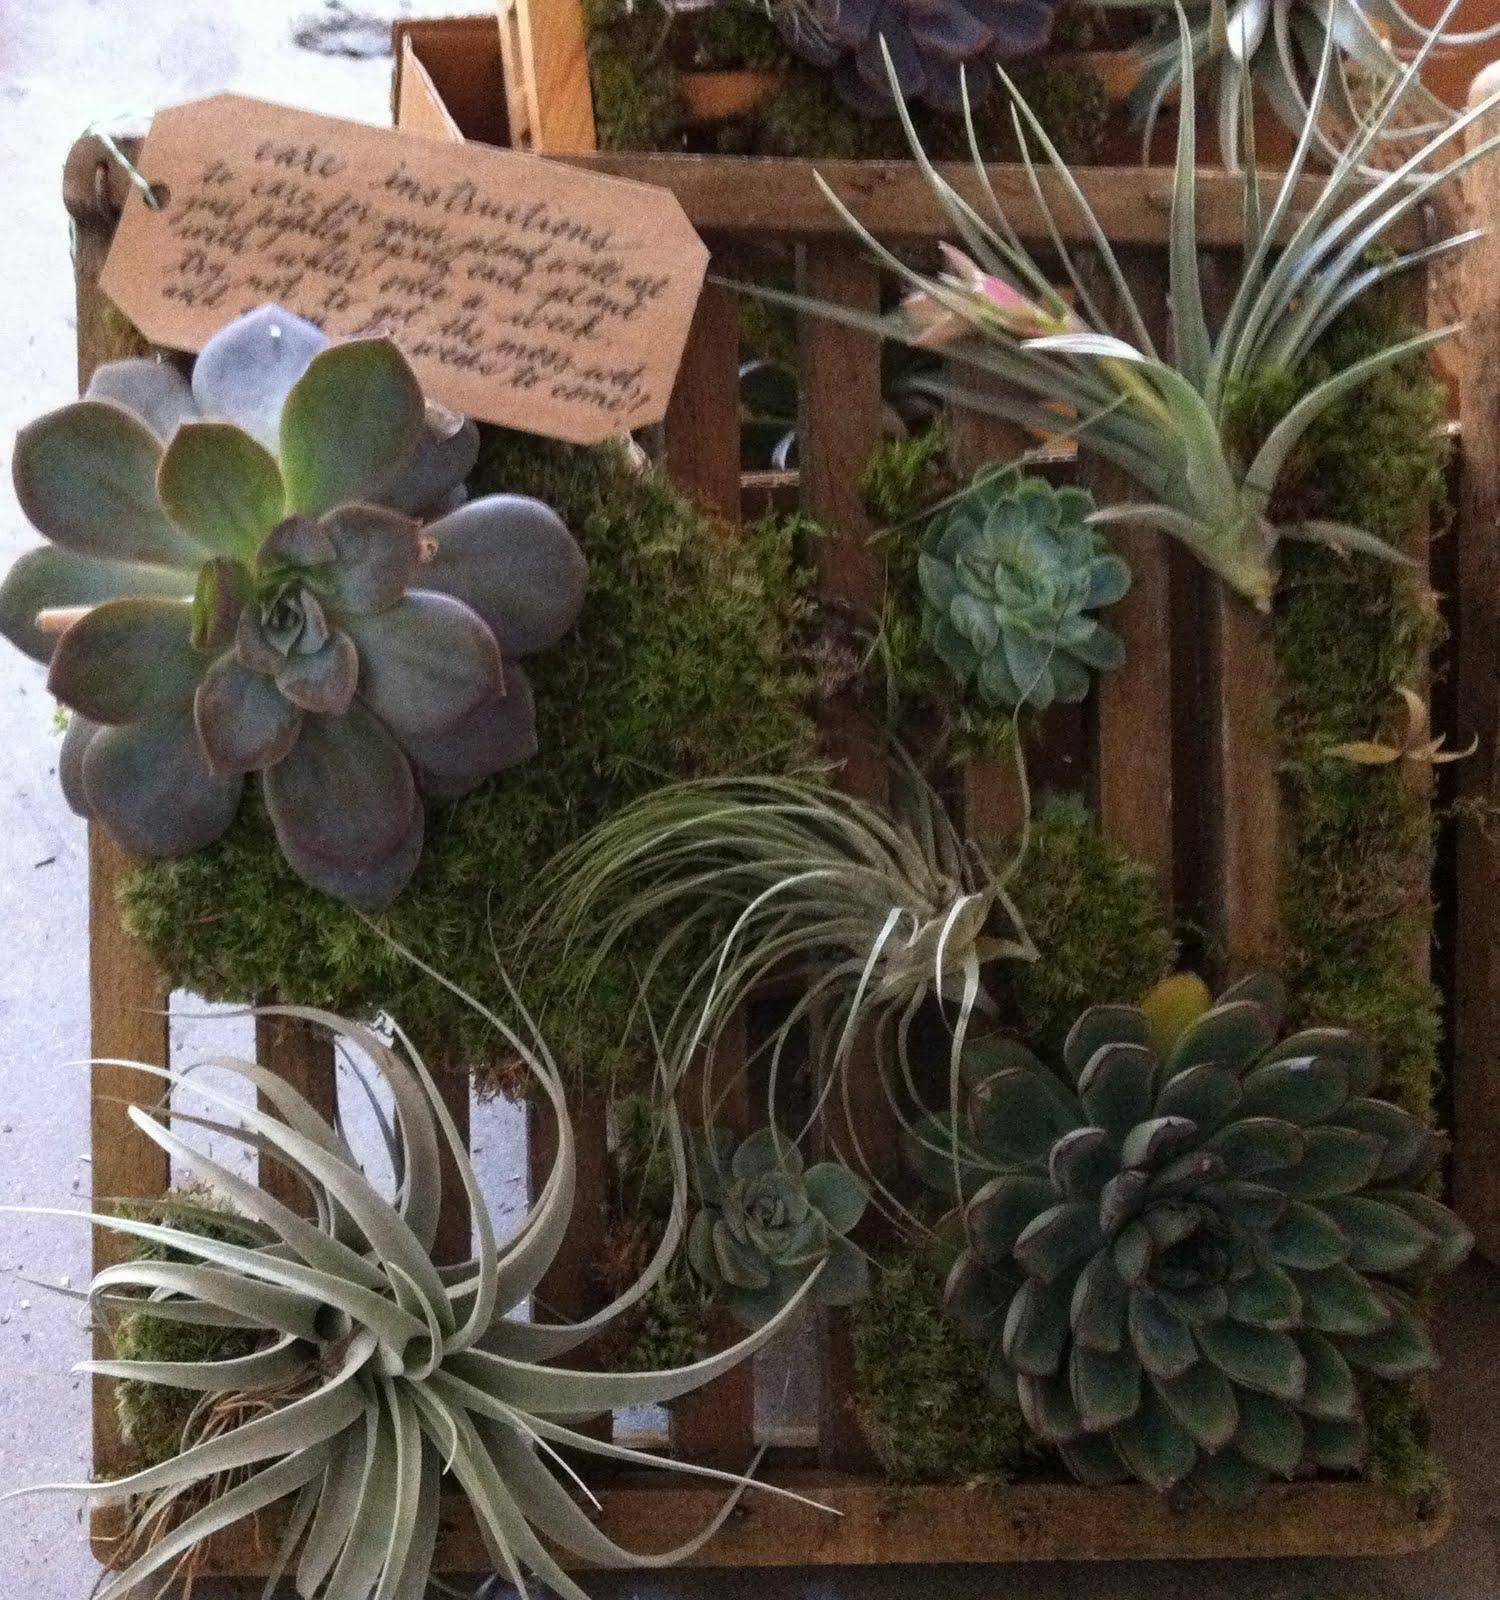 Poppies & Posies: Succulent & Air Plant Wall Art Regarding Air Plant Wall Art (View 7 of 20)